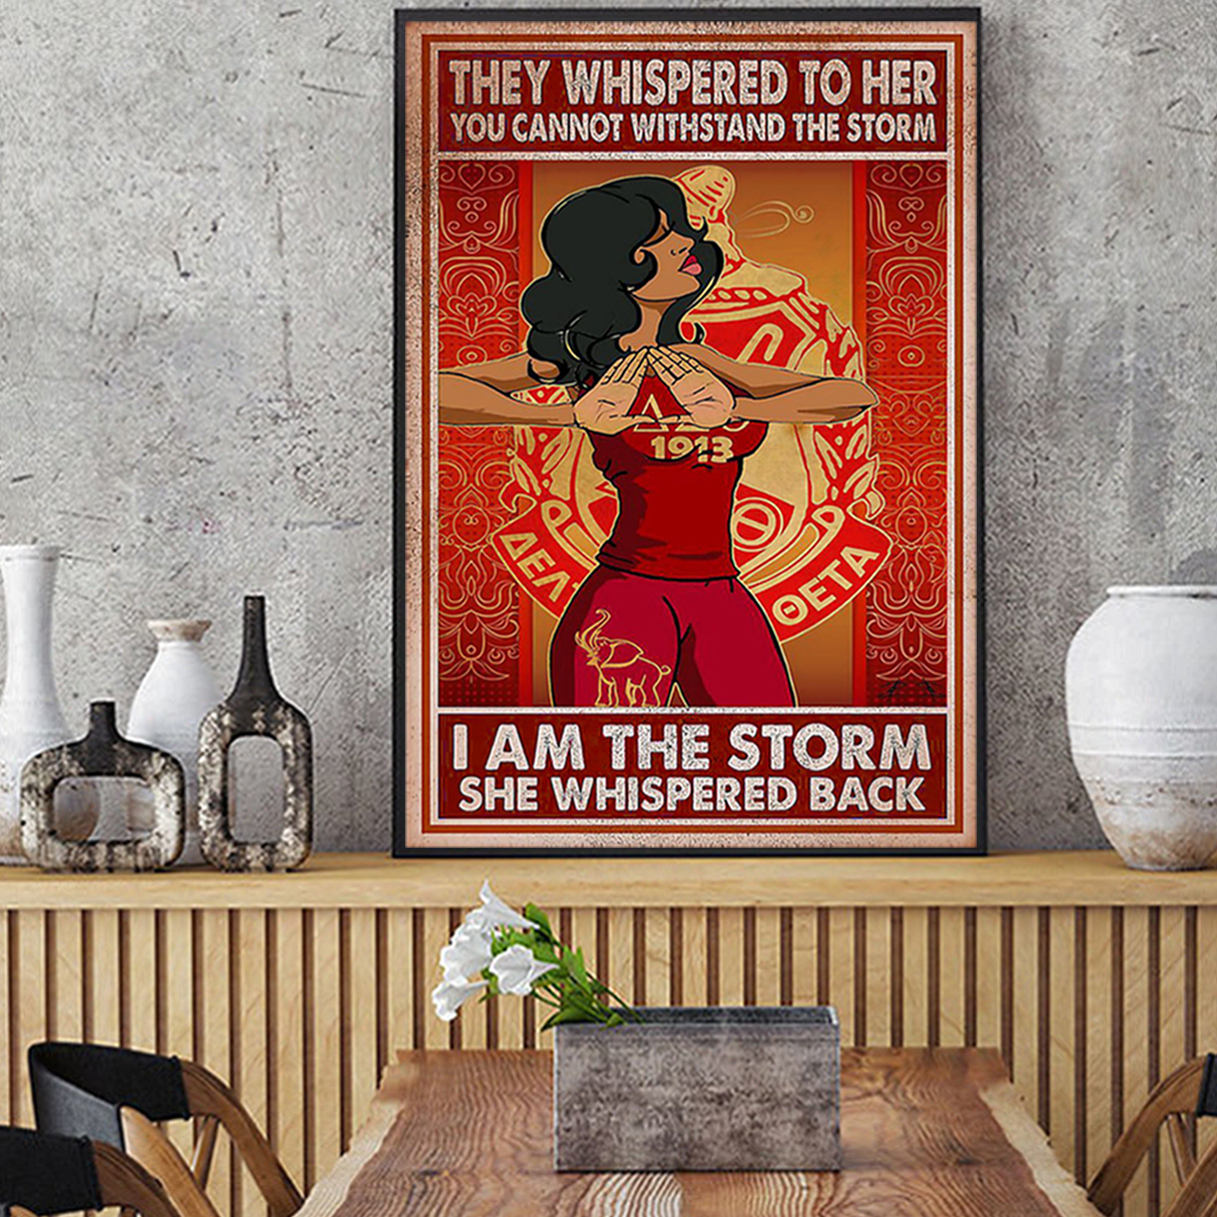 Delta girl they whispered to her you cannot withstand the storm poster A2